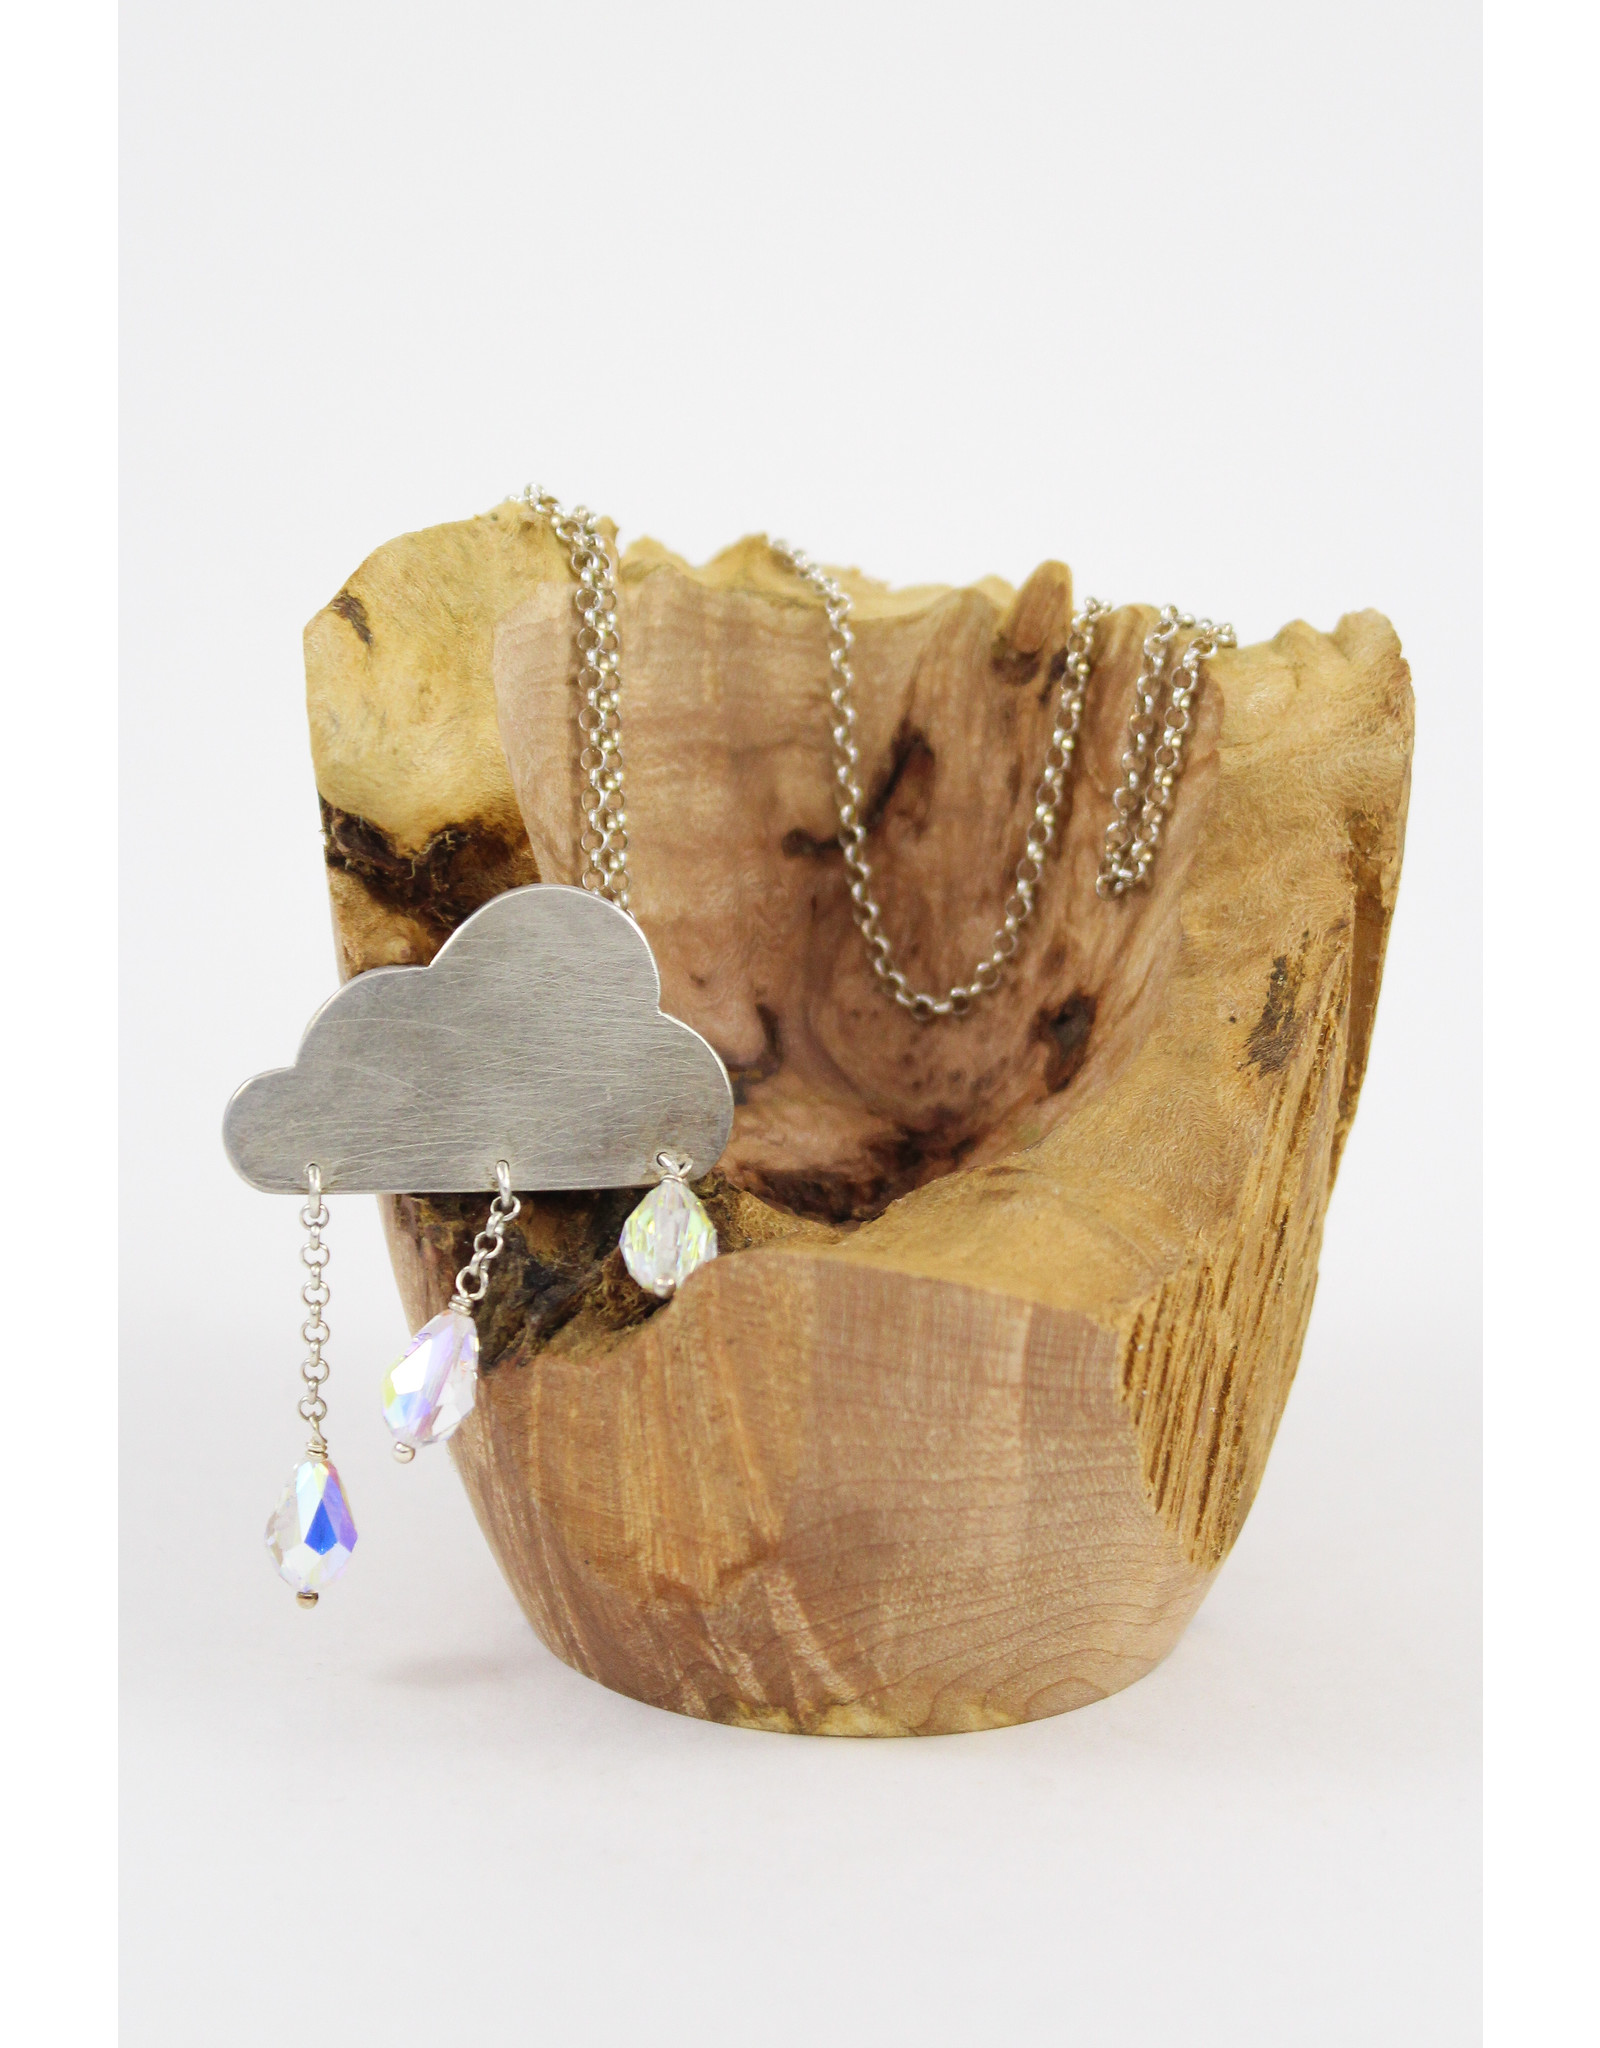 Tasha Matthews Cloud Necklace by Tasha Grace Designs